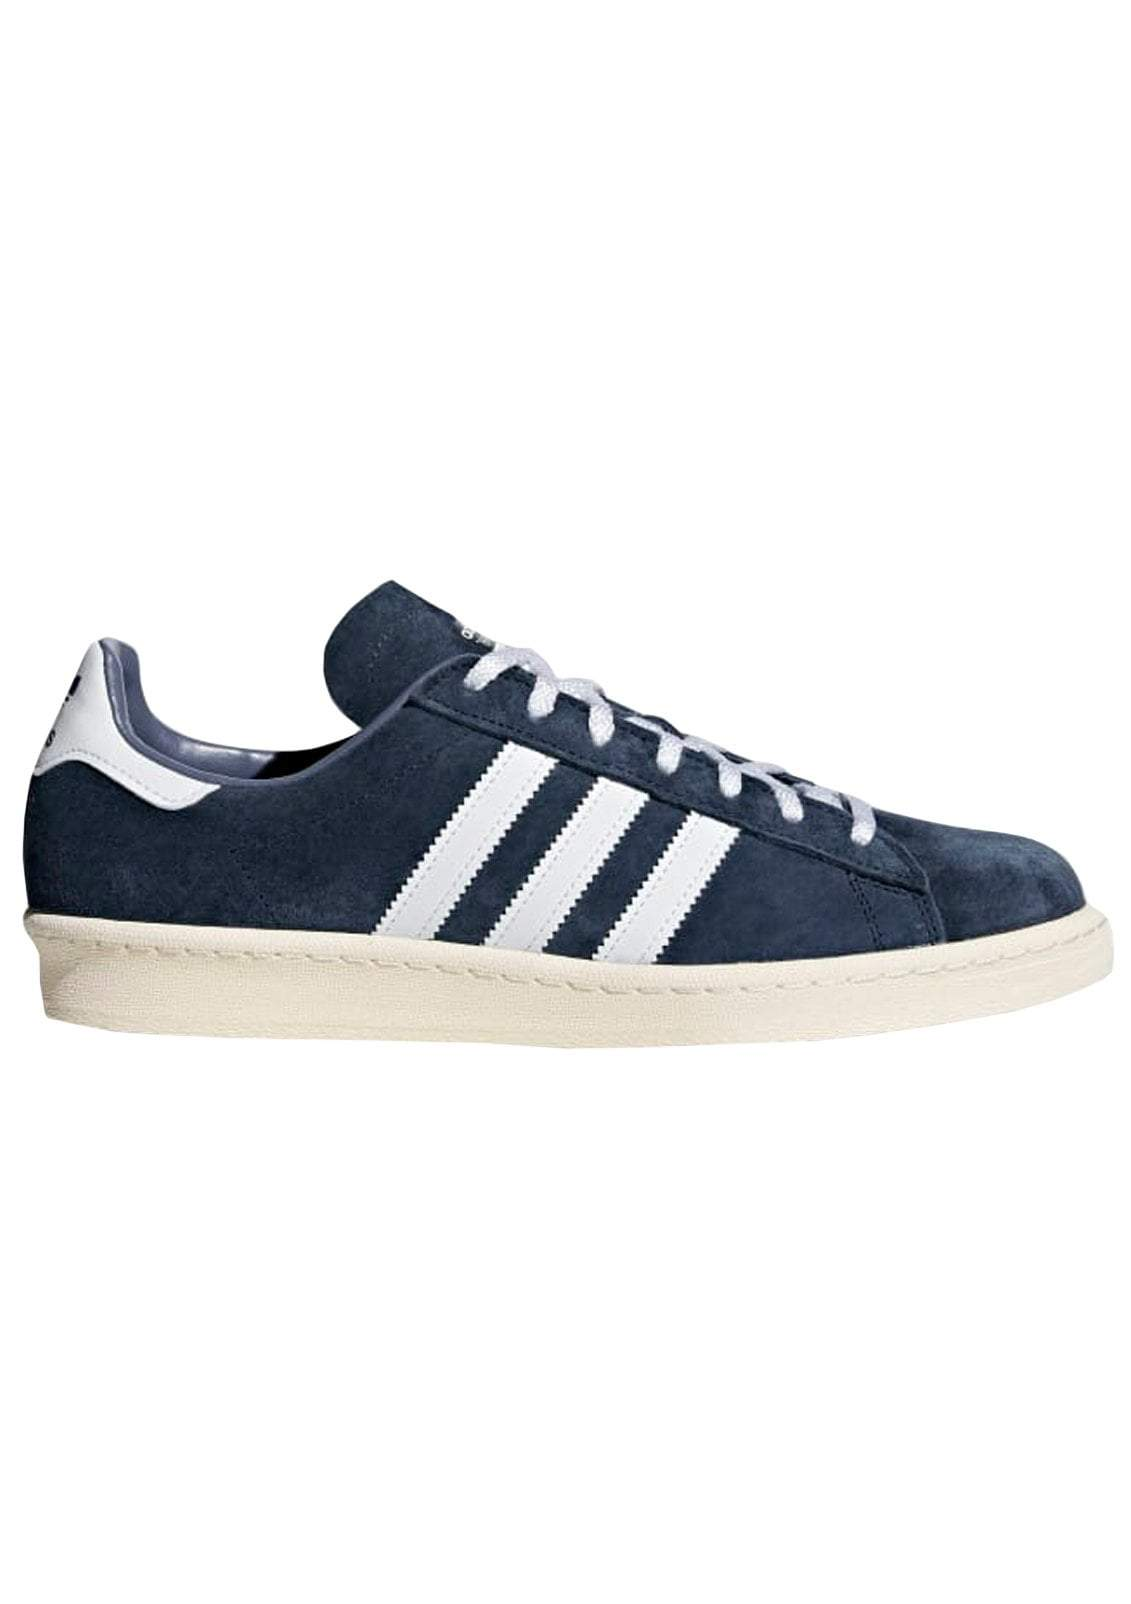 Adidas Campus 80S RYR Shoes